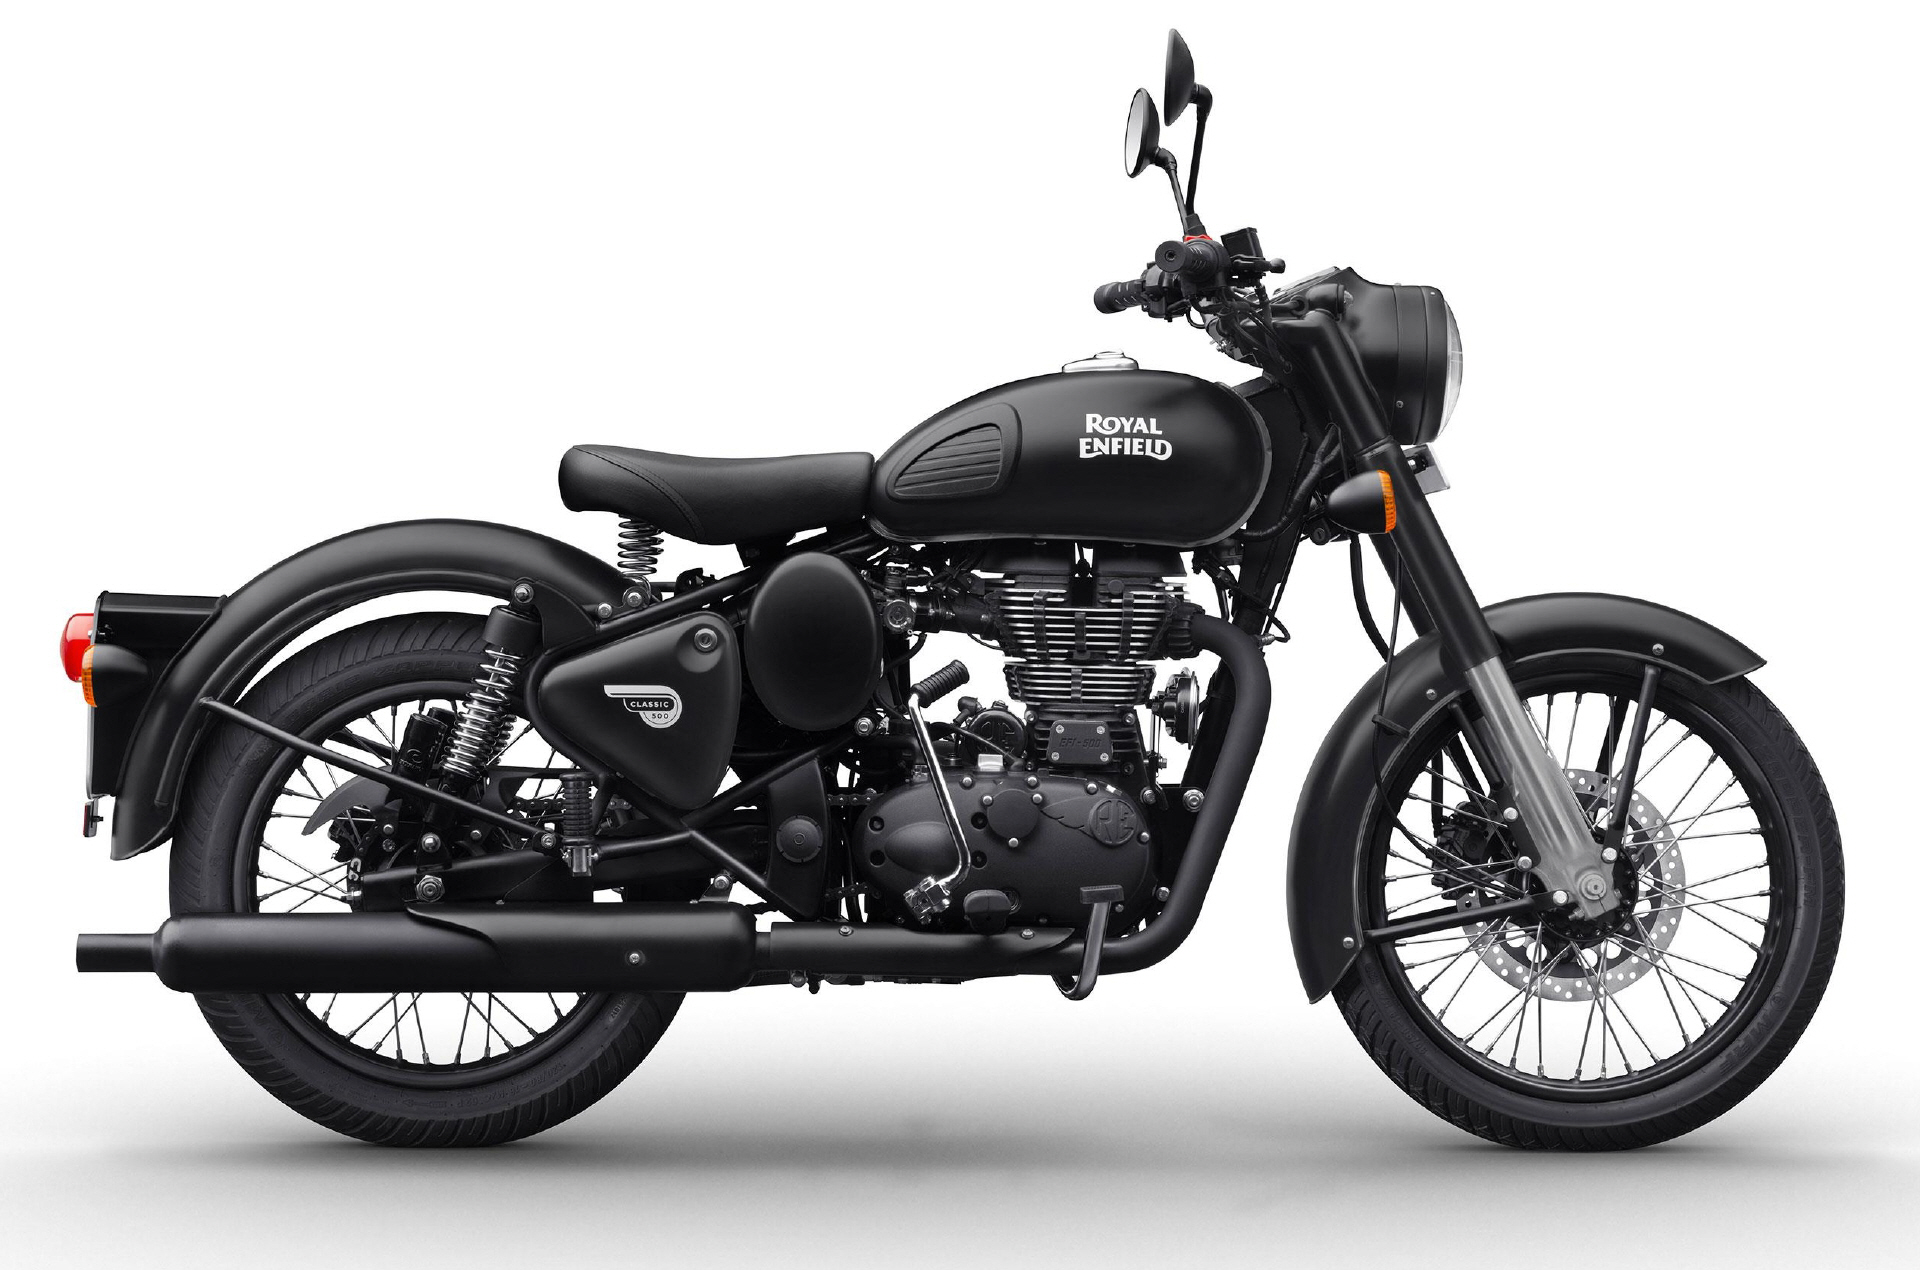 royalenfield_classic500_stealthblack_03jpg